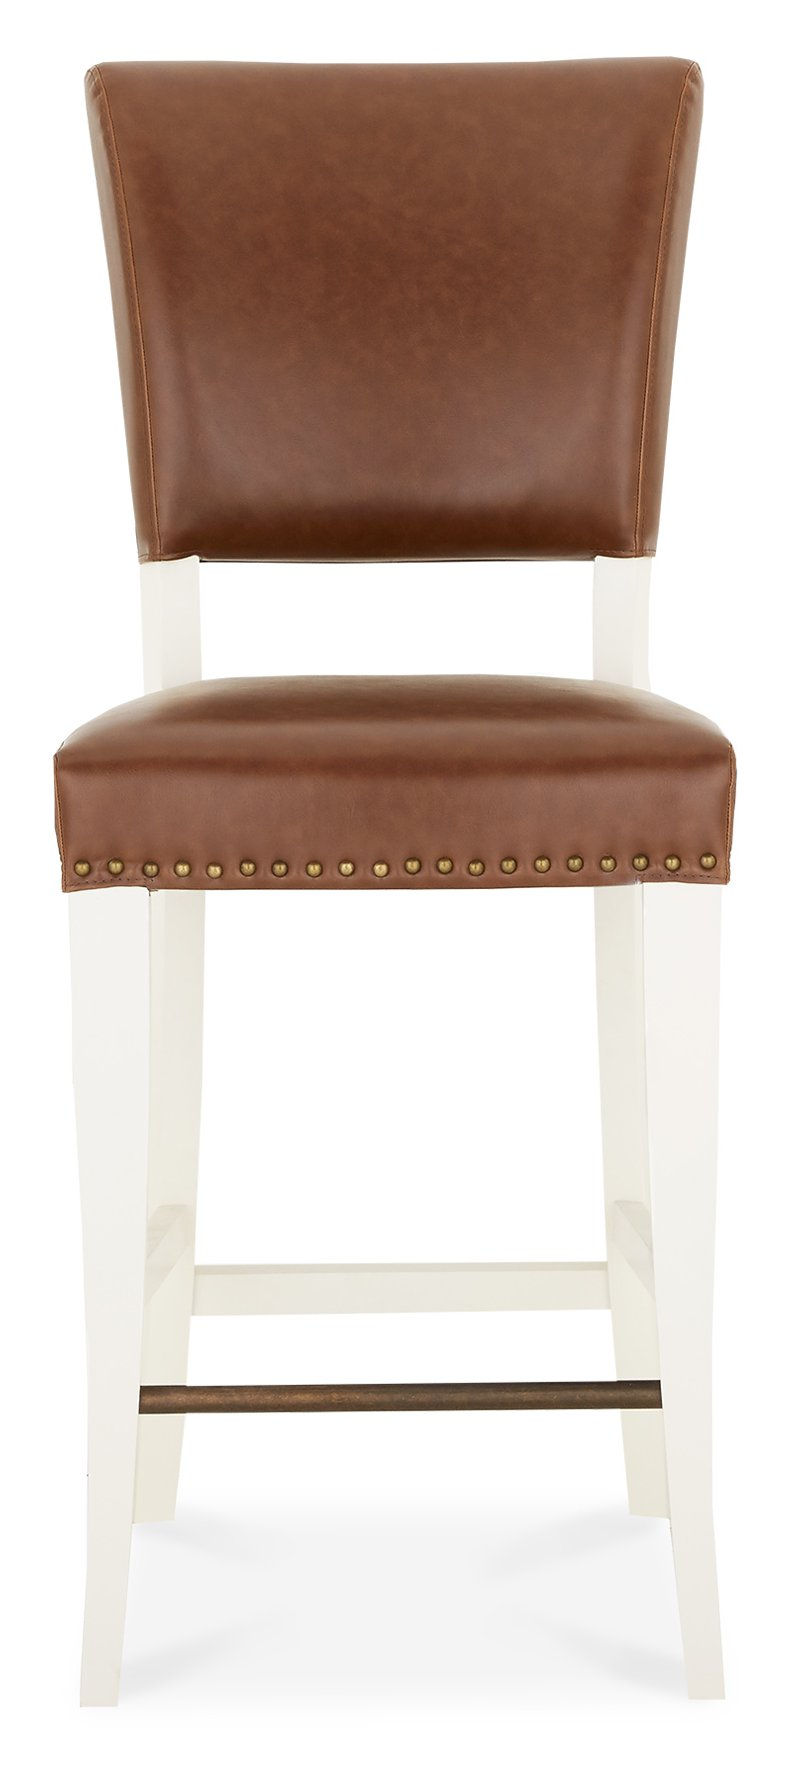 HIGHLAND IVORY STOOL - FRONT DETAIL